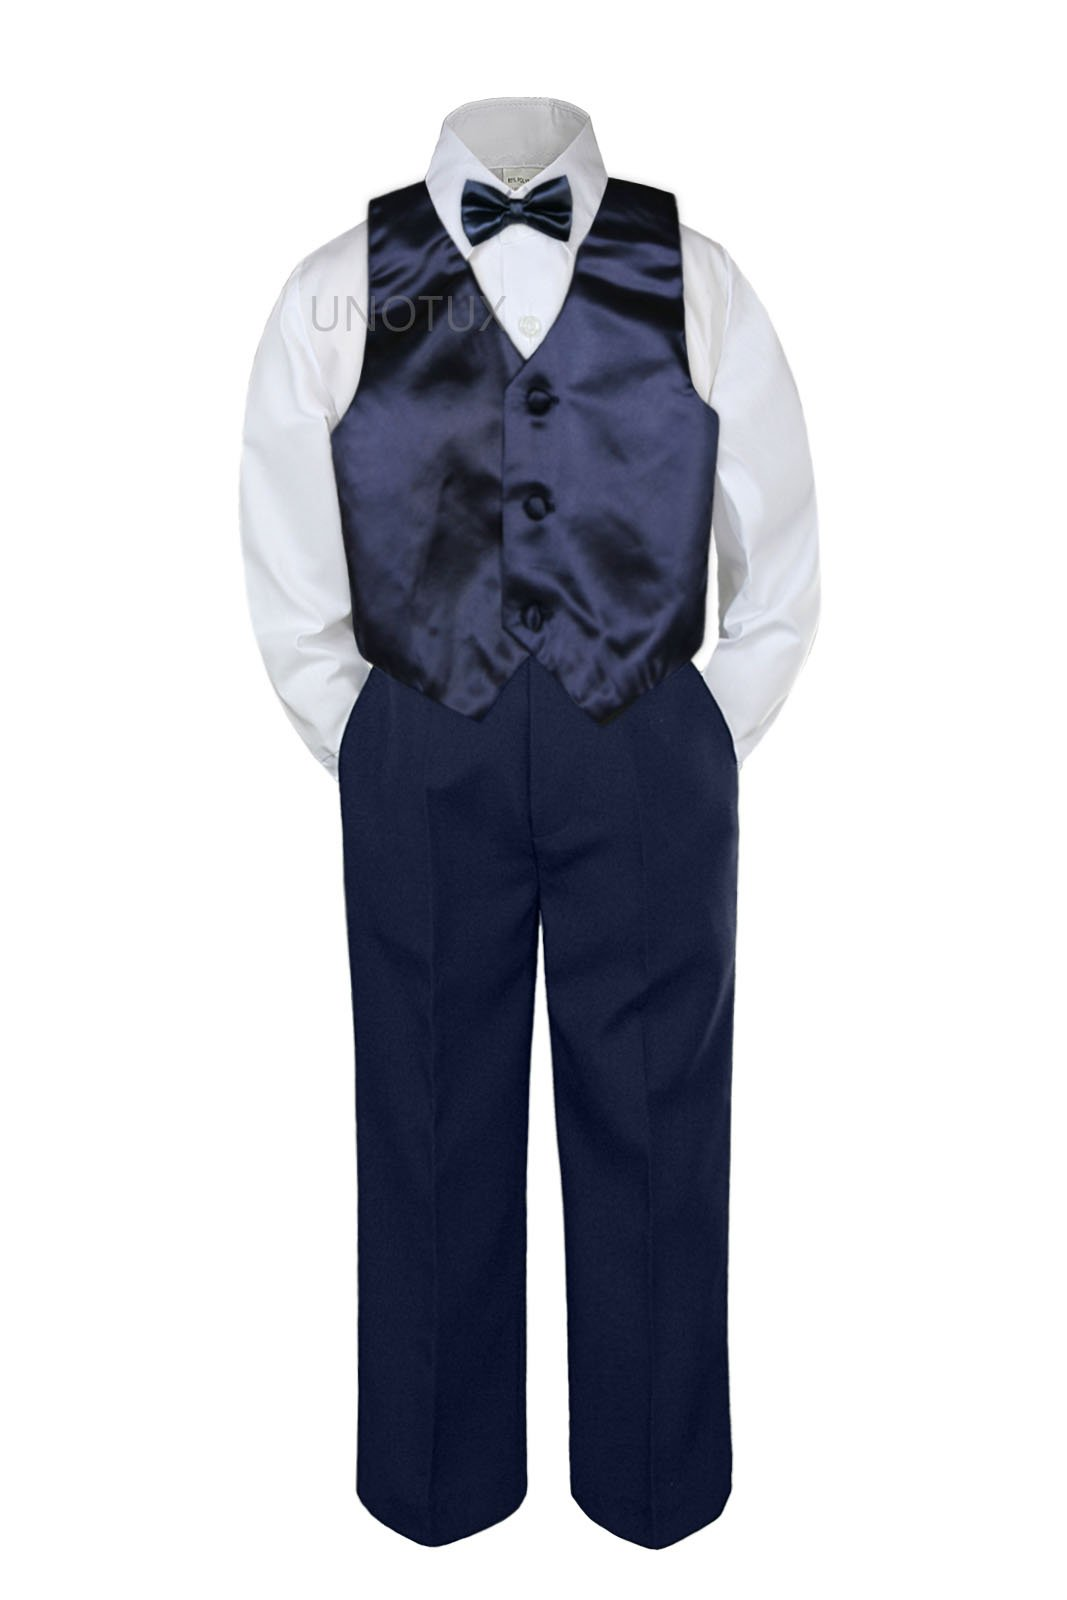 Leadertux 4pc Baby Toddler Boys Navy Blue Vest Bow Tie Navy Blue Pants Suits S-7 (3T)